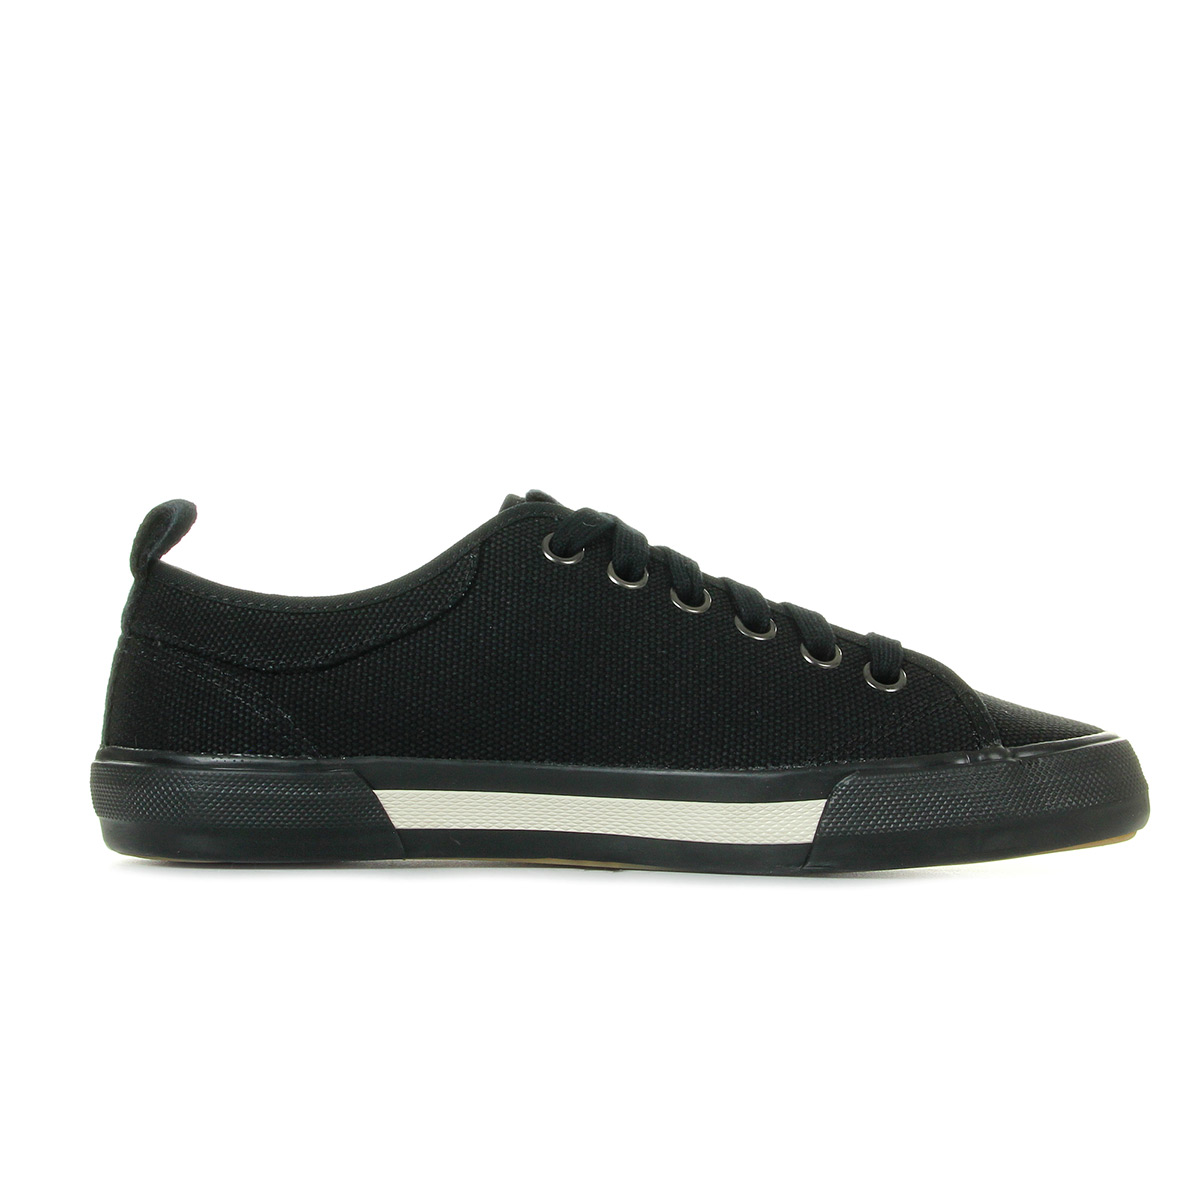 Baskets Fred Perry Horton Canvas Blk C91JpAX2J